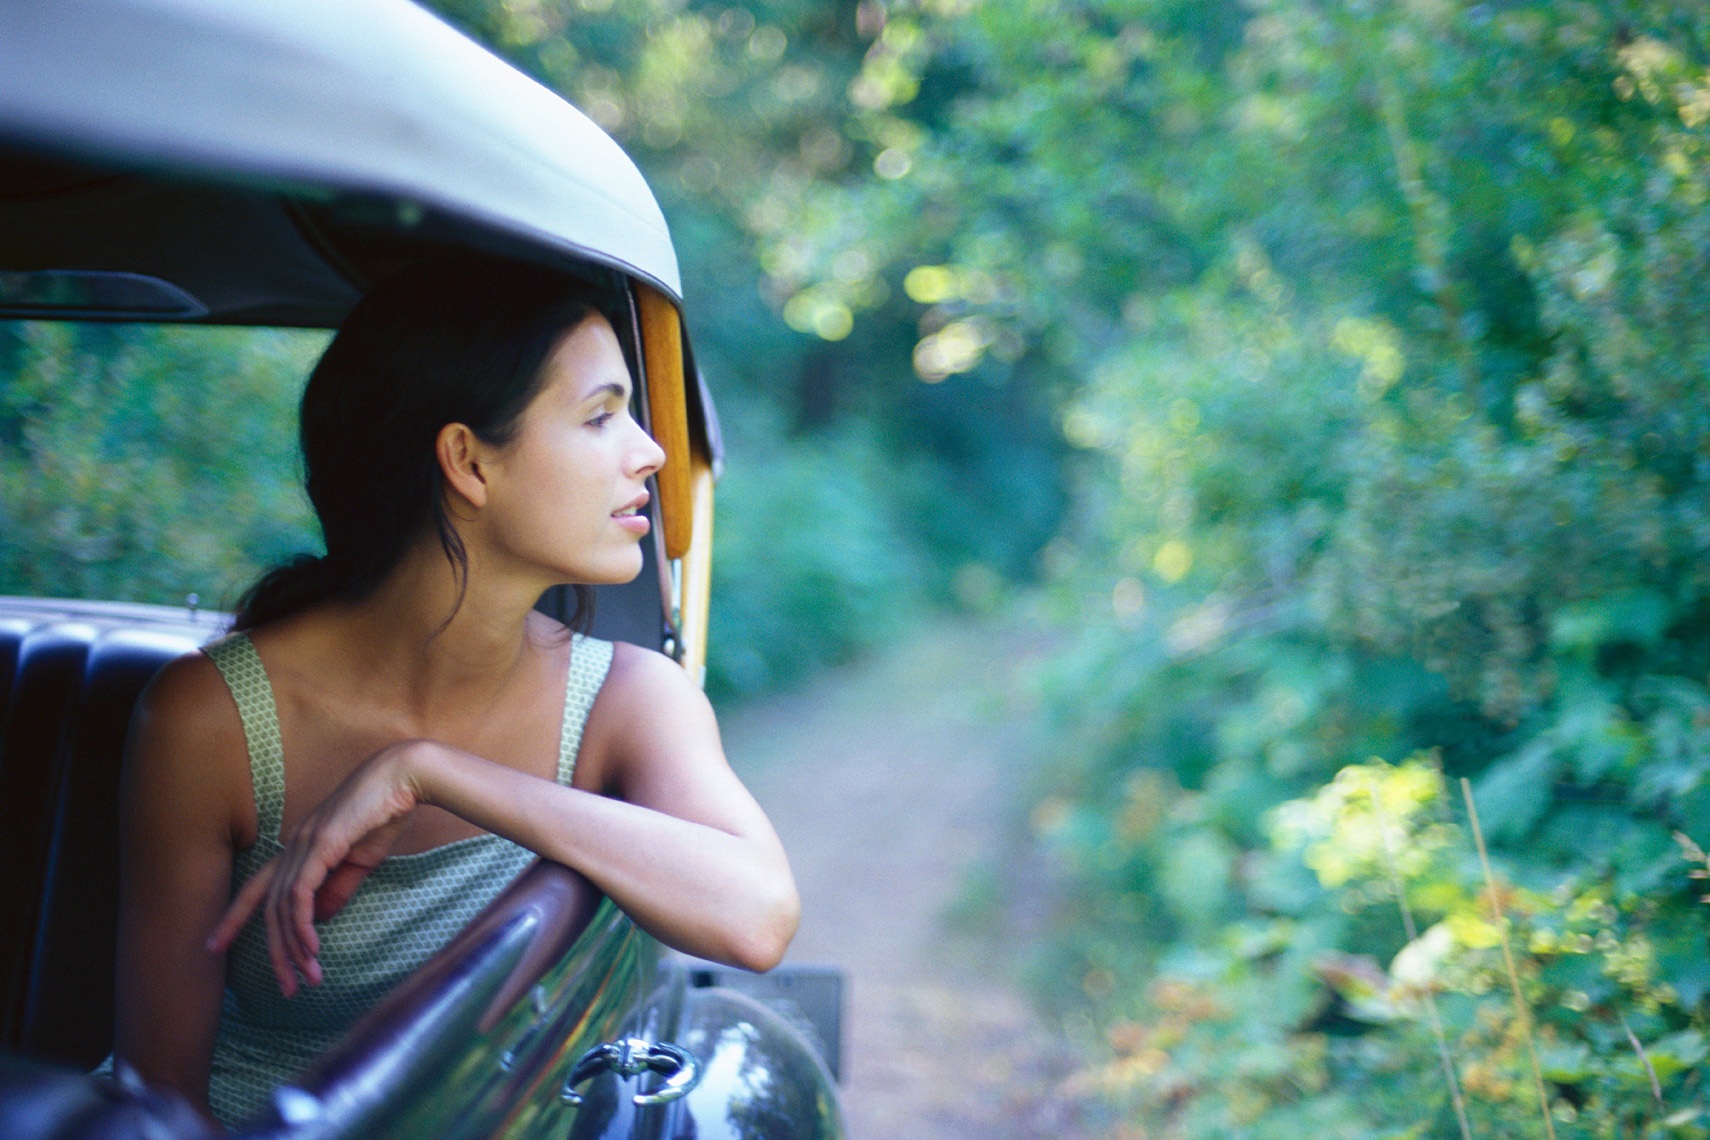 Woman in green dress looking out the window of and old Ford car on a country road